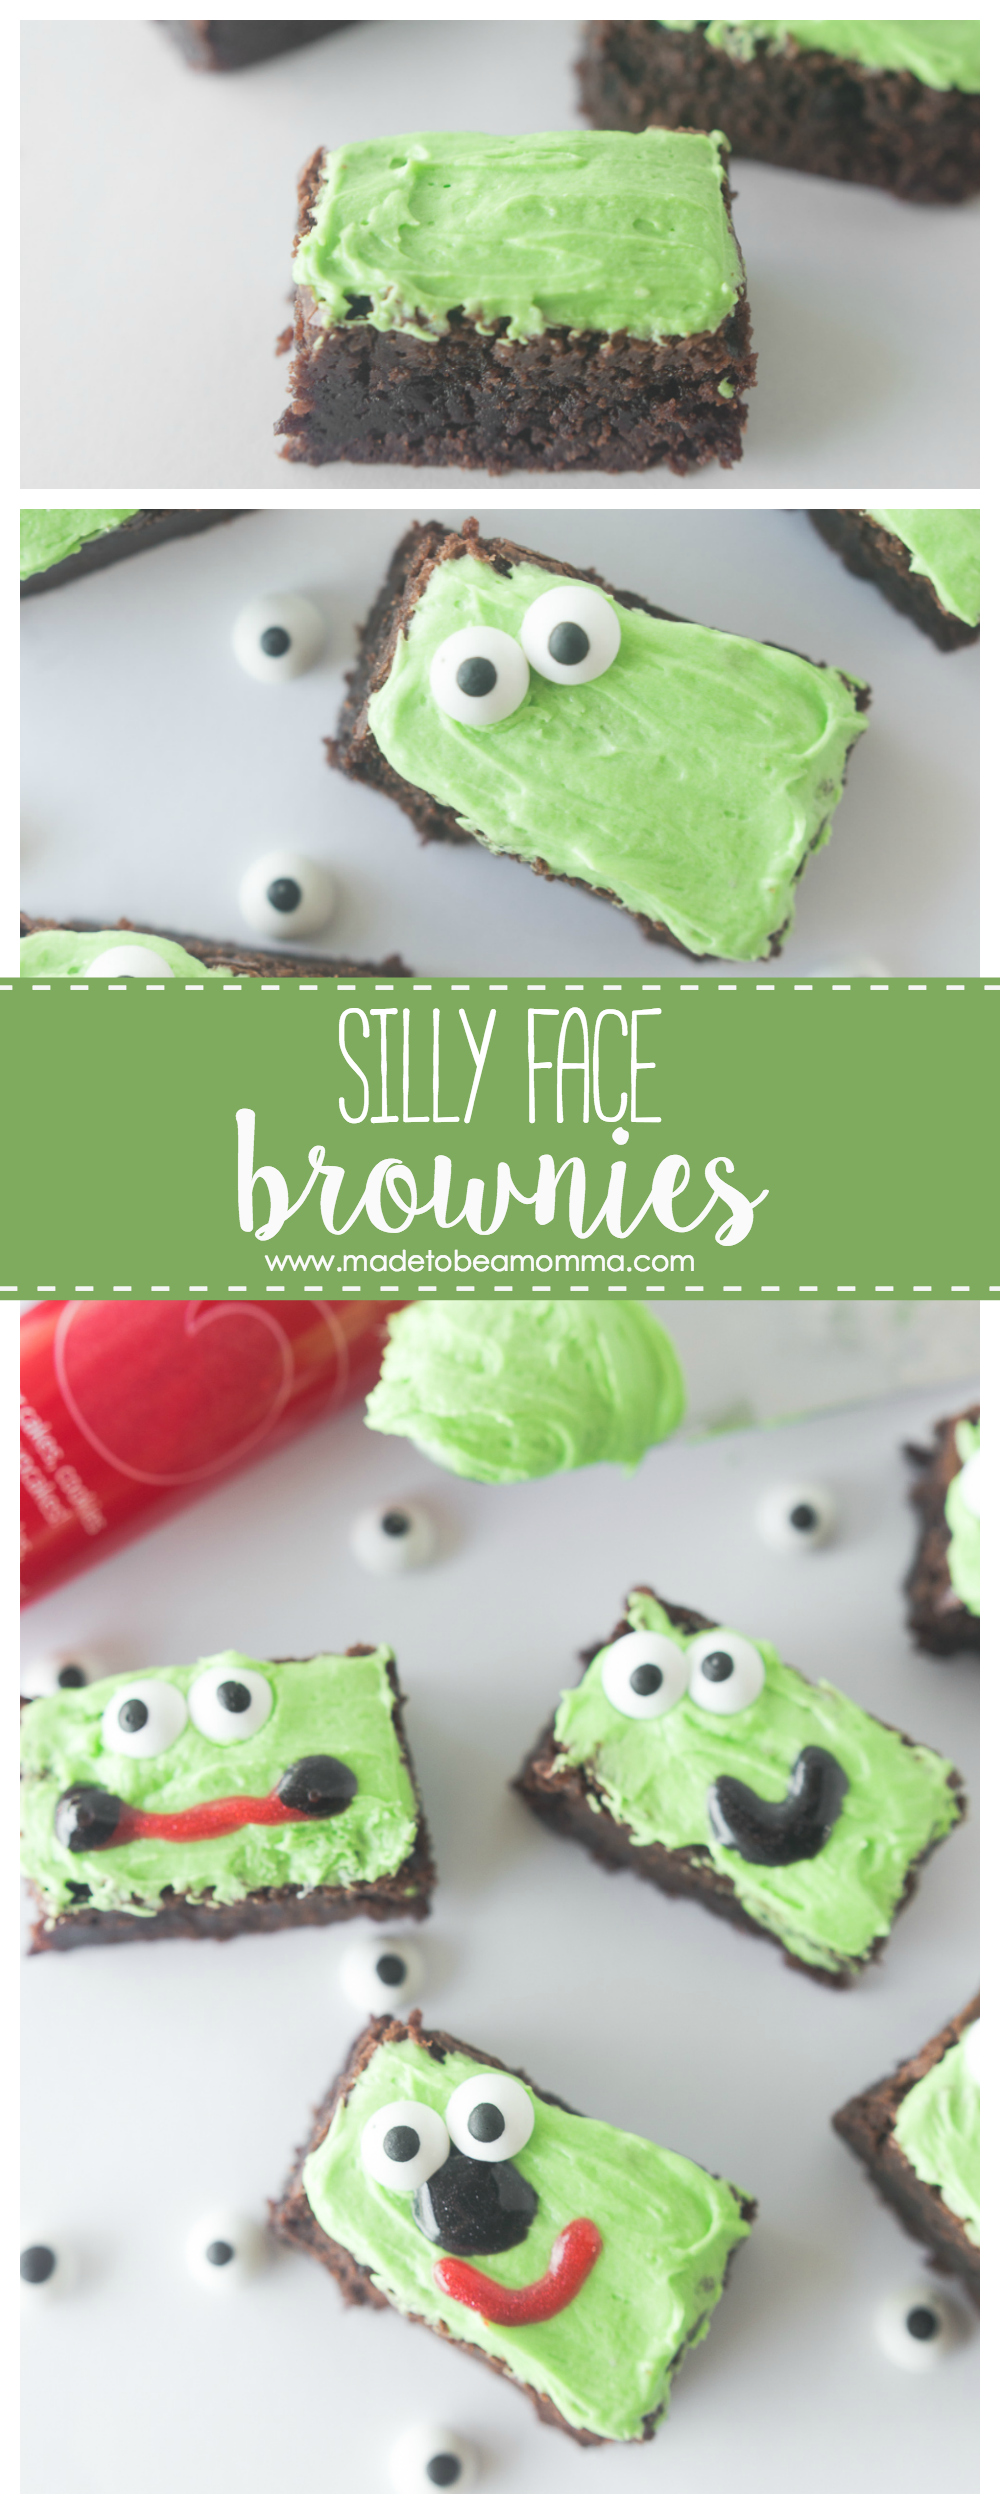 Silly Face Brownies: let these silly face brownies bright up your childs day. They make for a delicious afternoon snack and are a recipe even the kids can enjoy making!